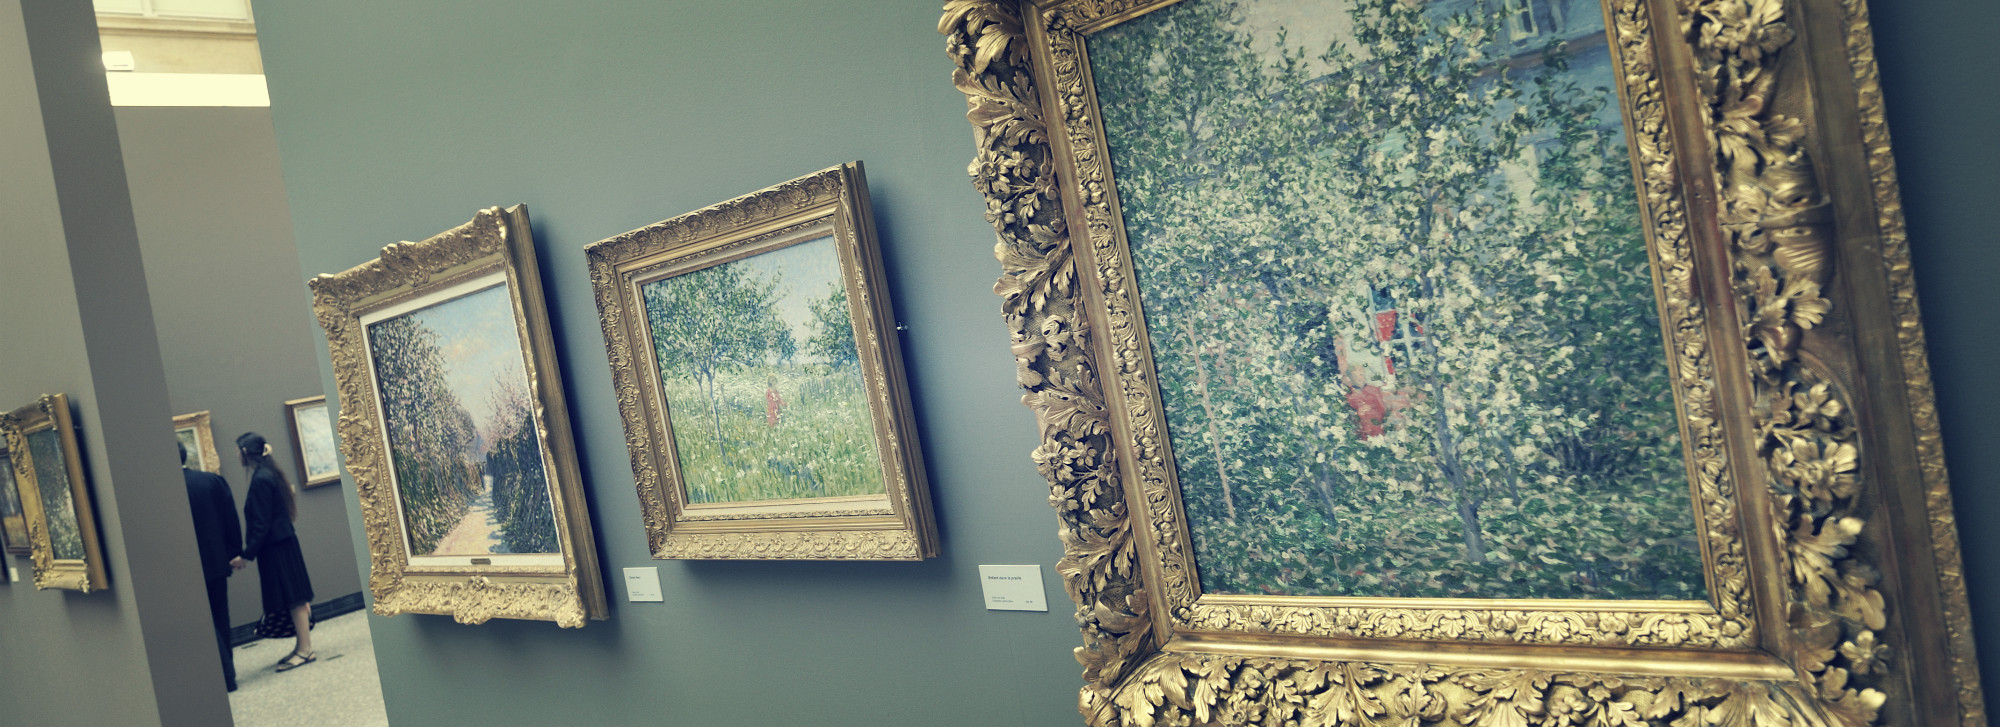 Second largest Impressionist paintings collection in France